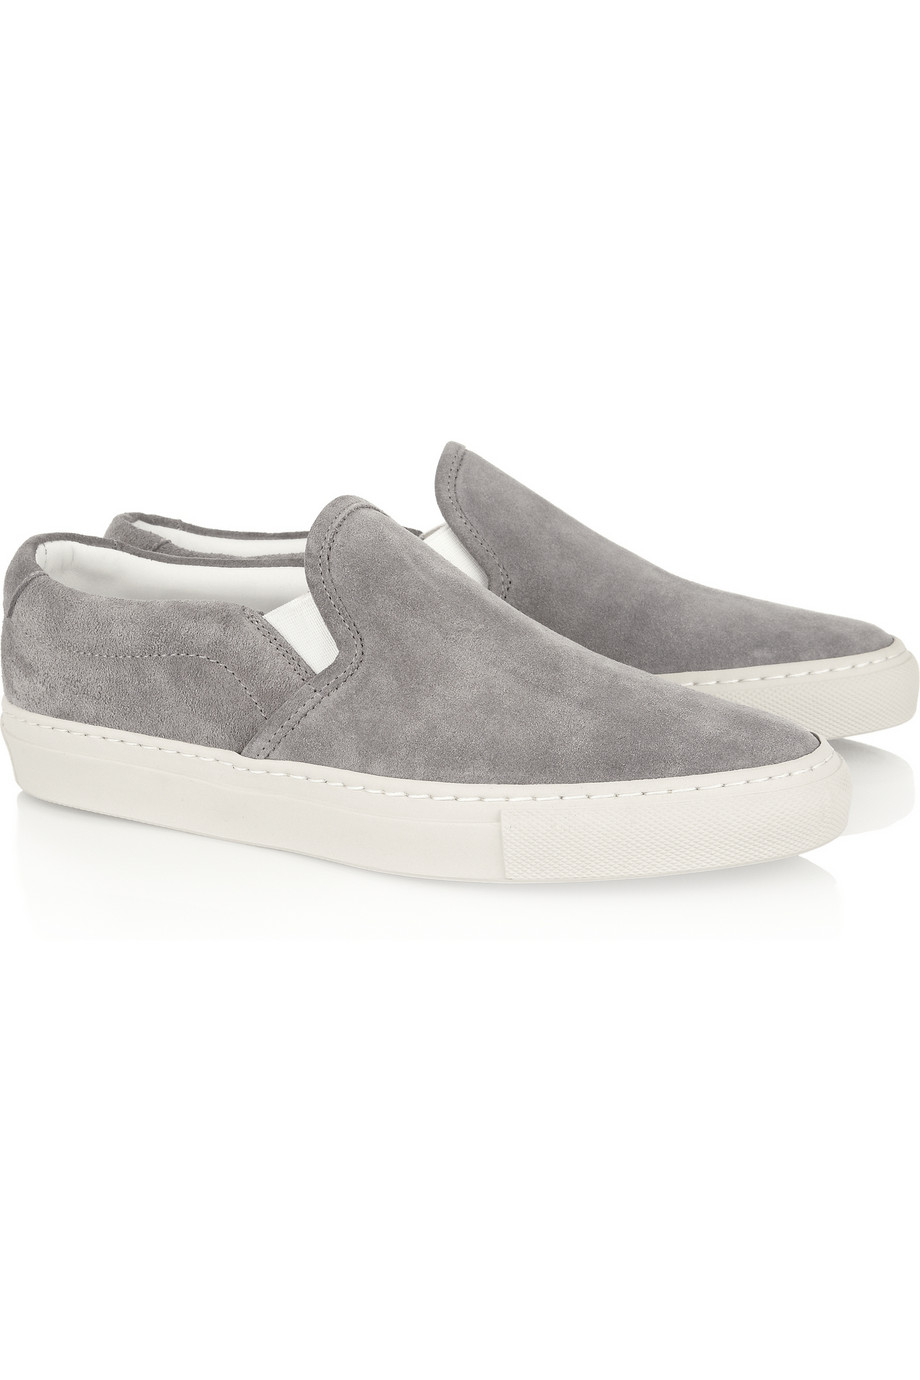 Common Projects Suede Sneakers In Gray Lyst